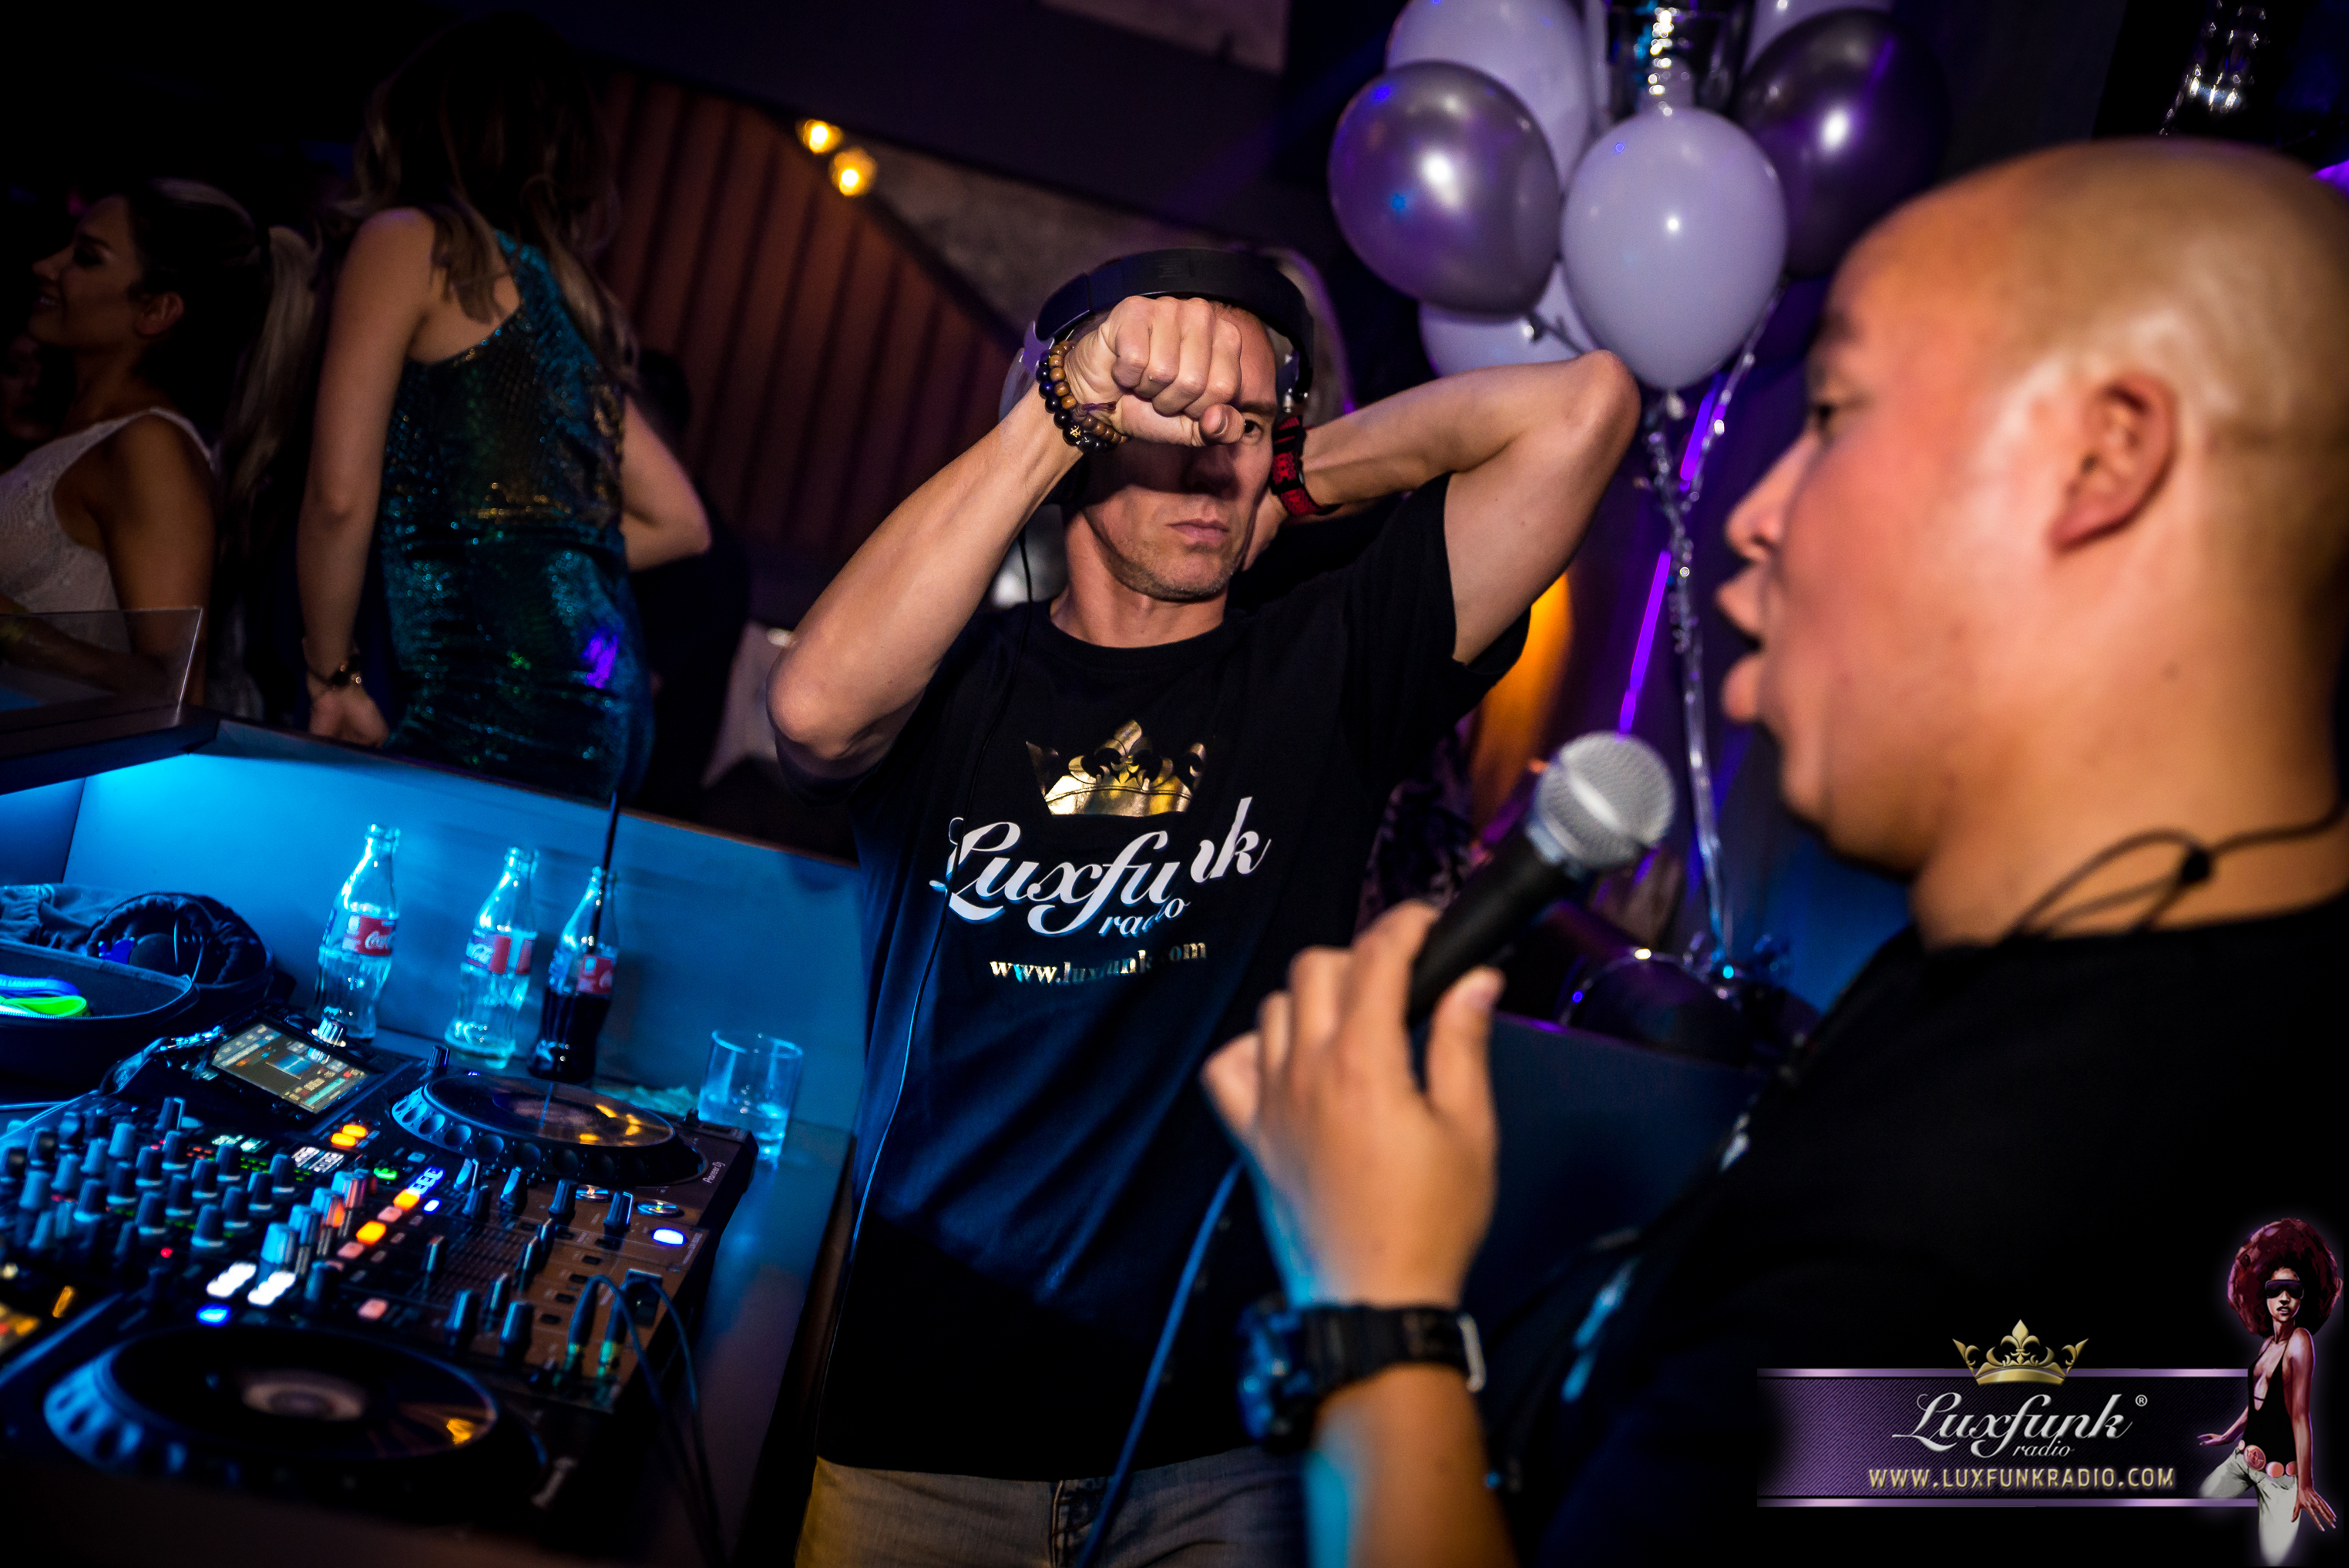 luxfunk-radio-funky-party-20191108-lock-budapest-1194